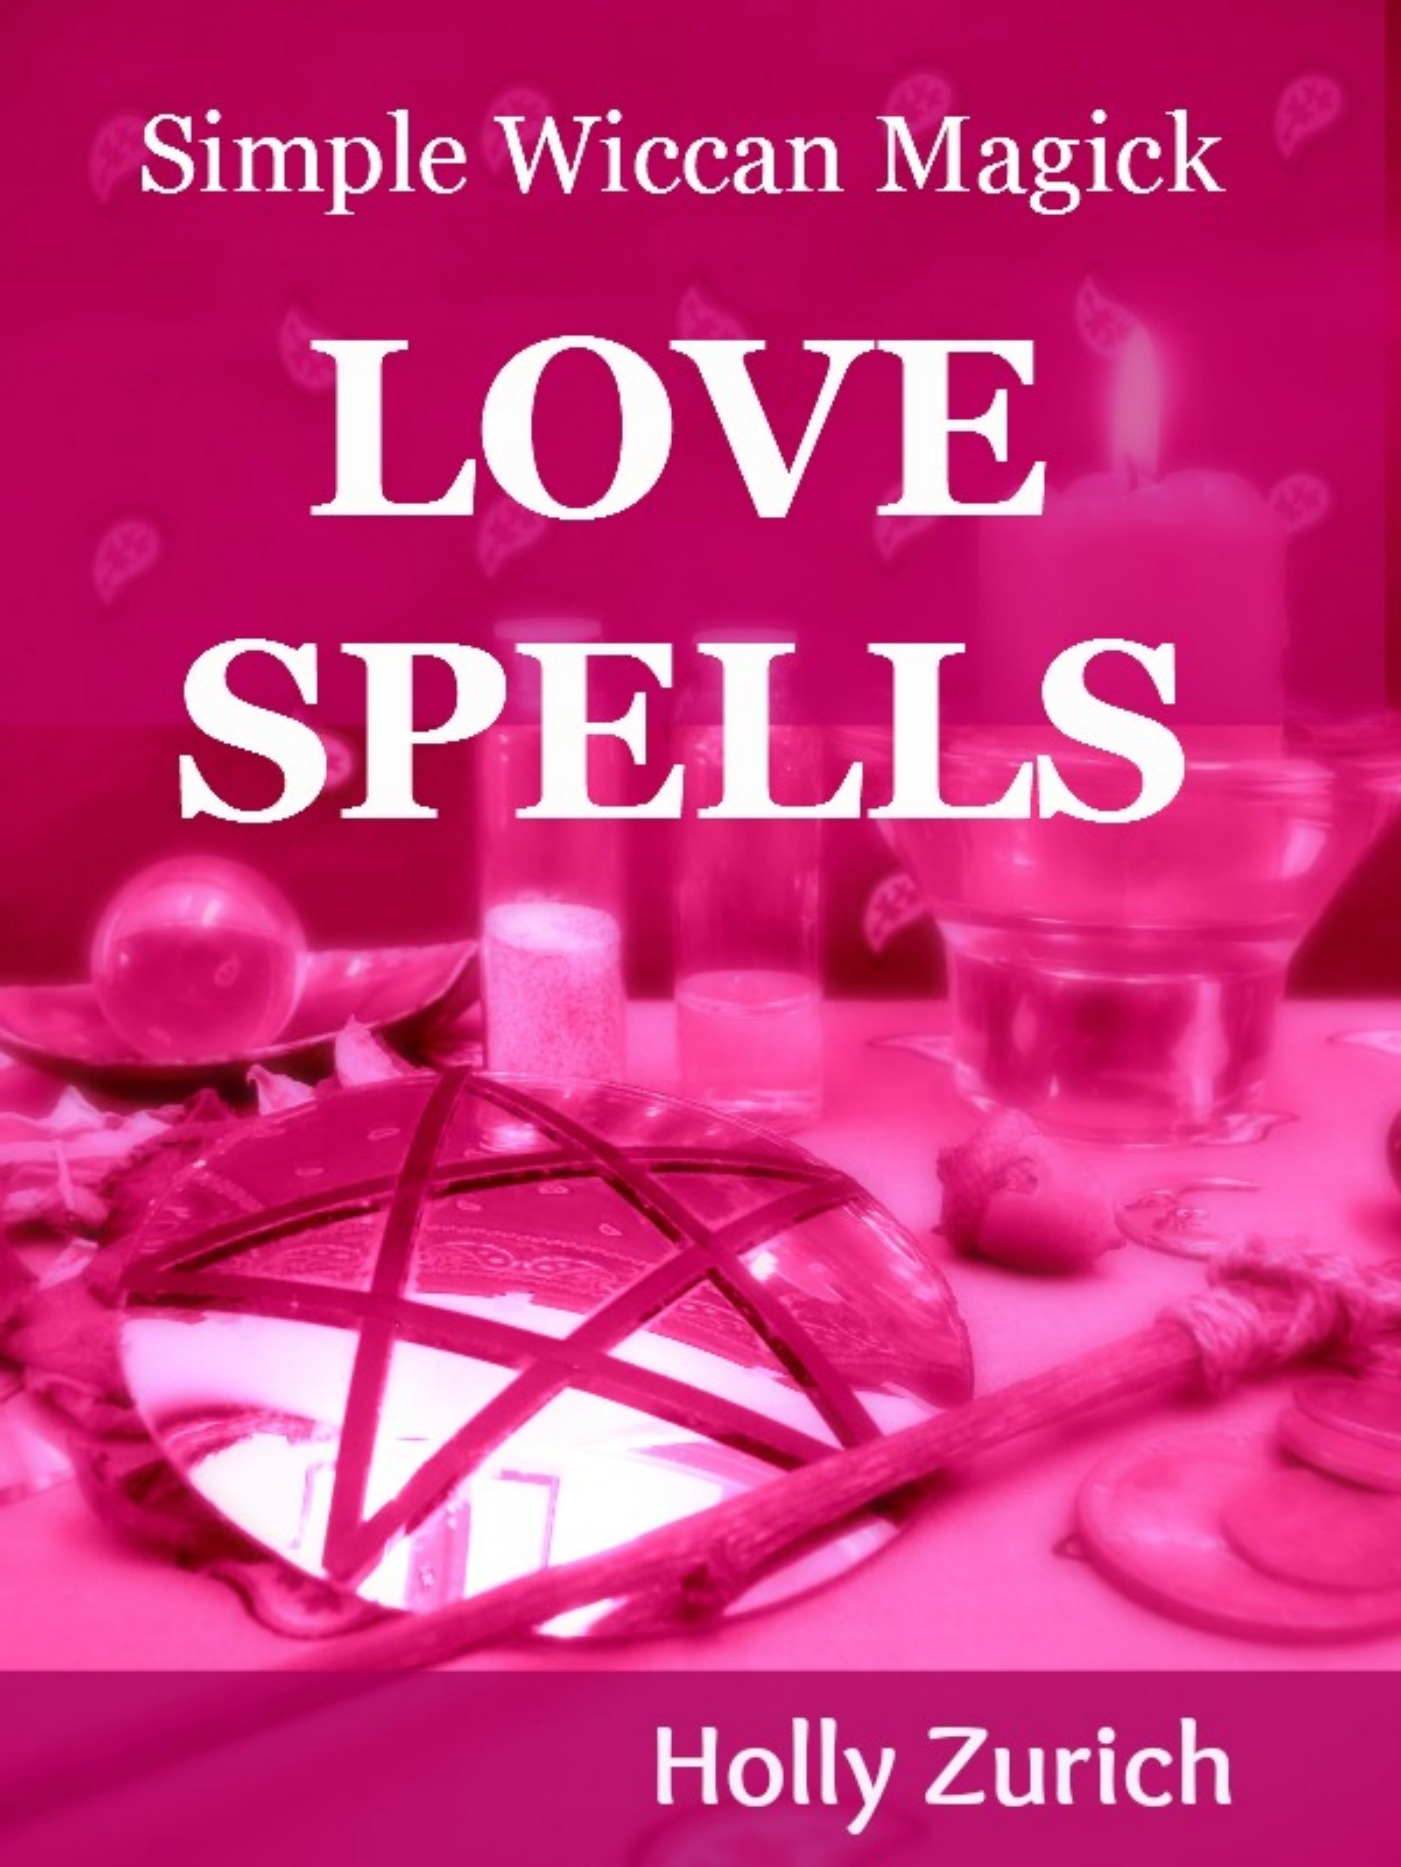 Simple Wiccan Magick Love Spells By: Holly Zurich